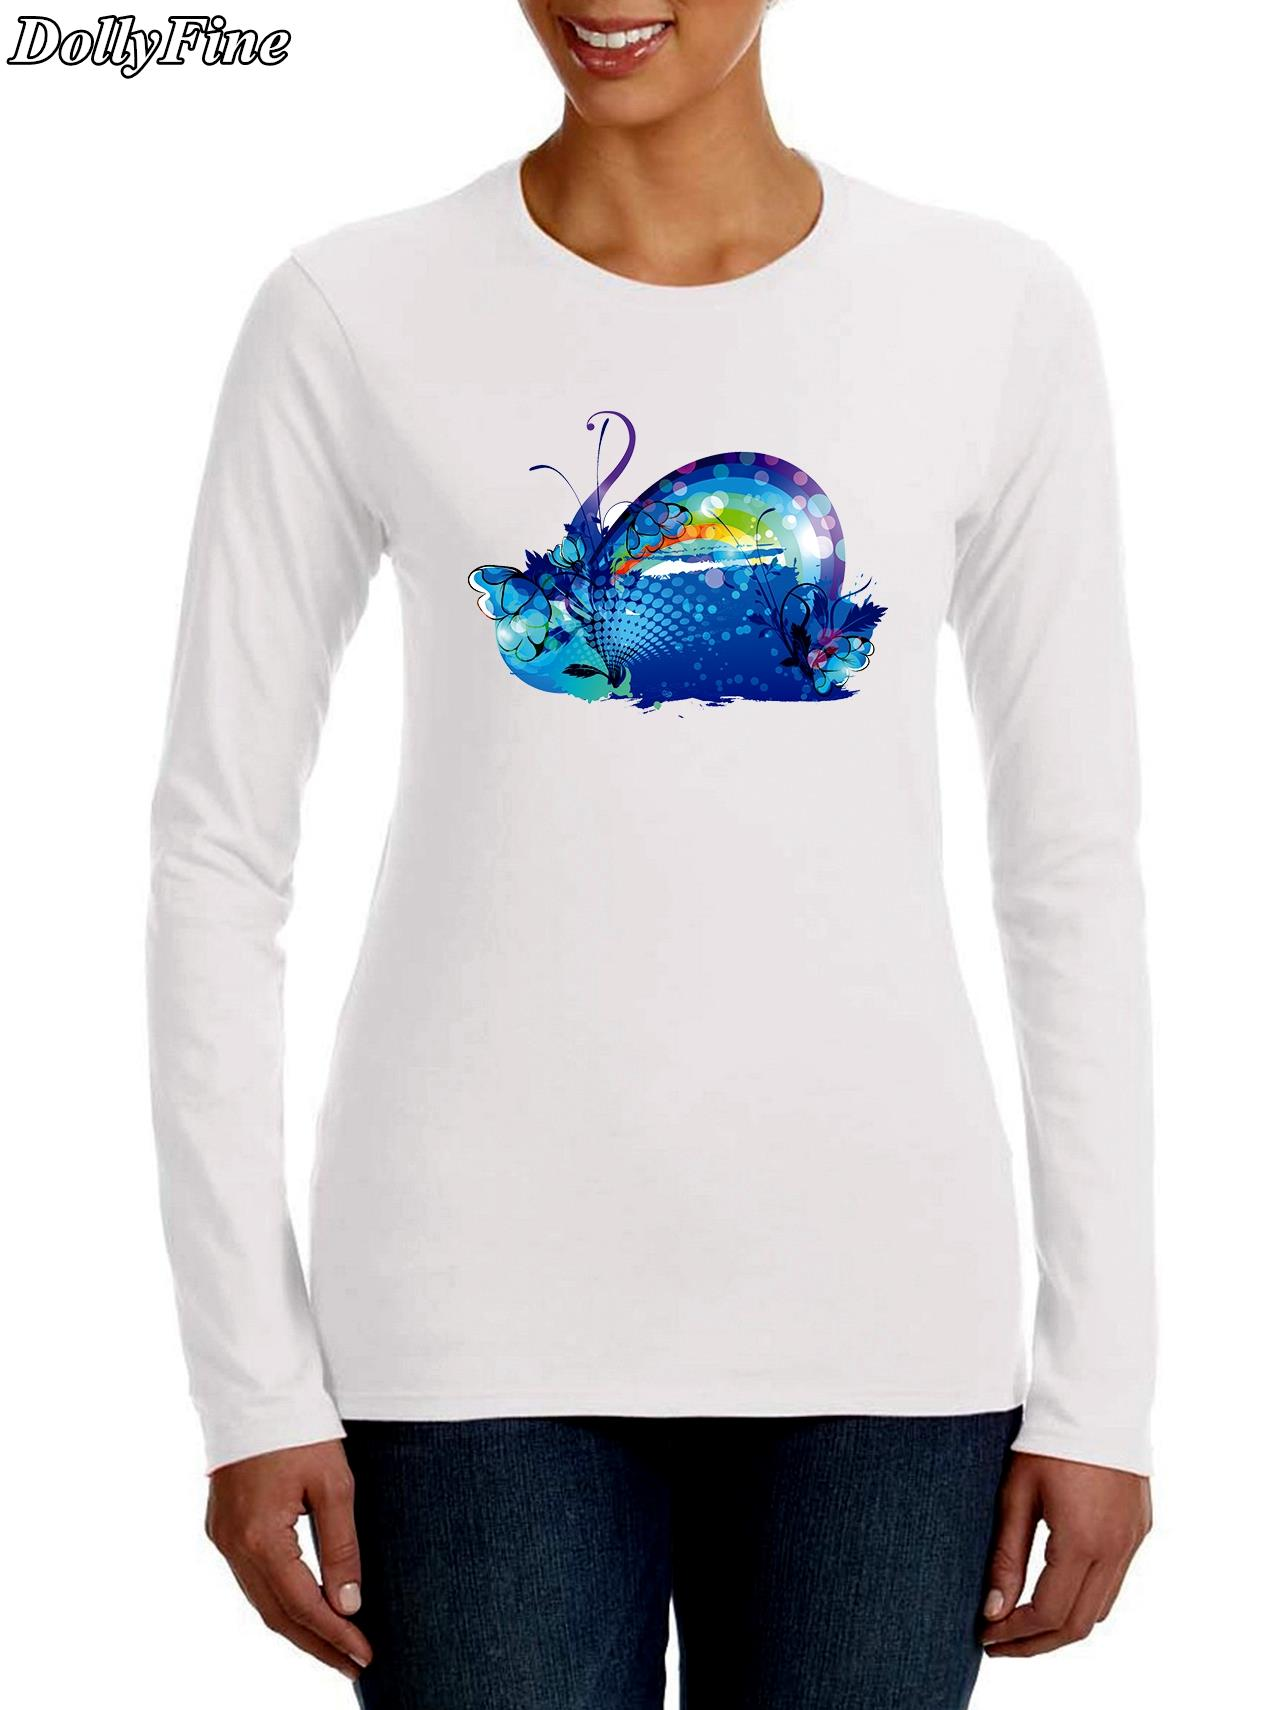 Shirt design womens - 2016 New Arrivals Funny Hand Painted Design Women T Shirt Hipster Tops Customize Printed Long Sleeve